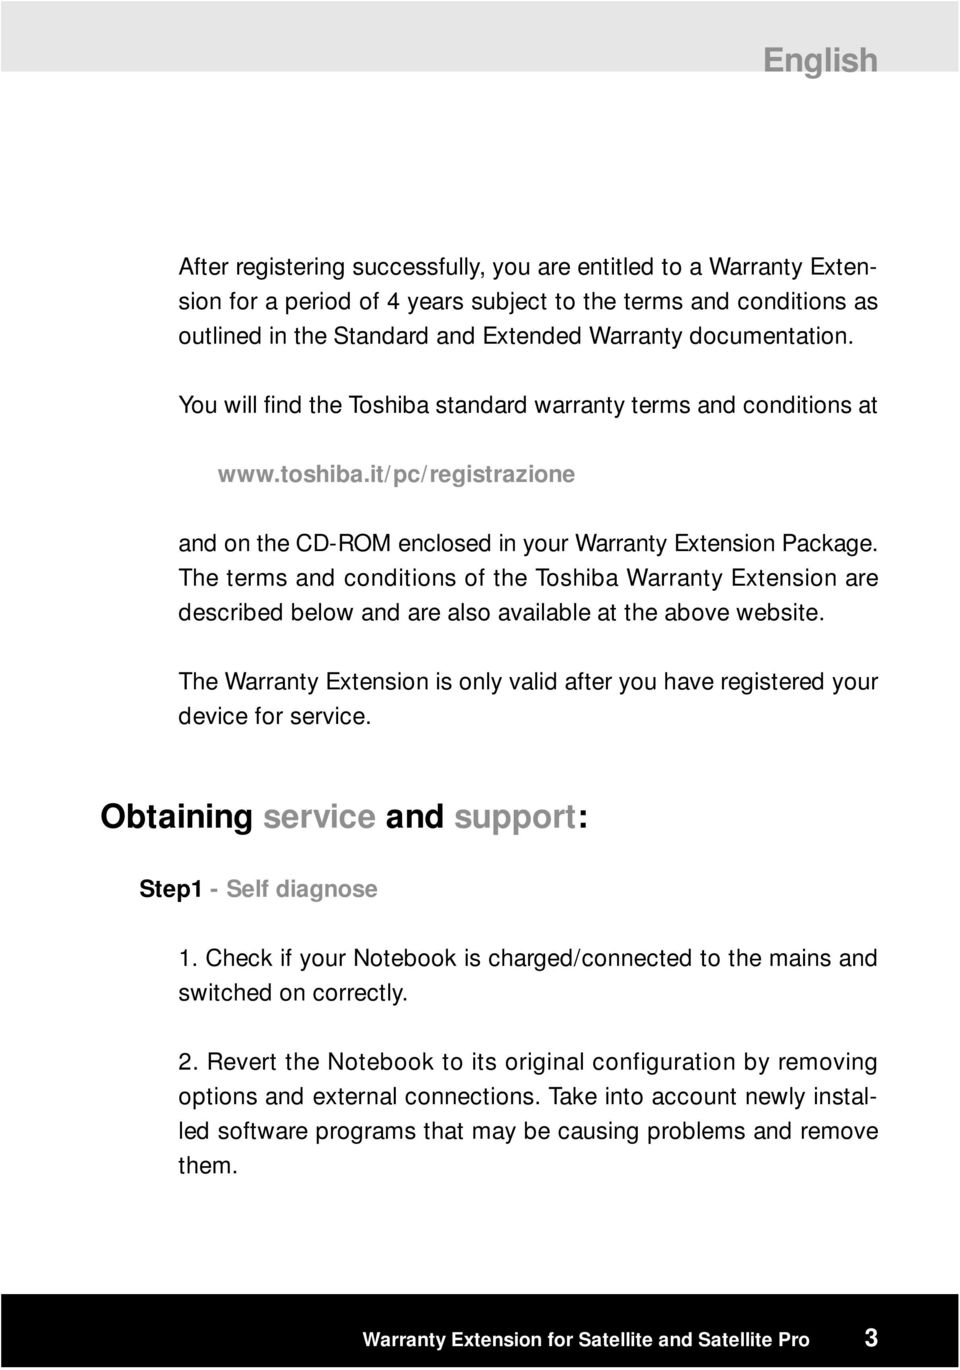 The terms and conditions of the Toshiba Warranty Extension are described below and are also available at the above website.